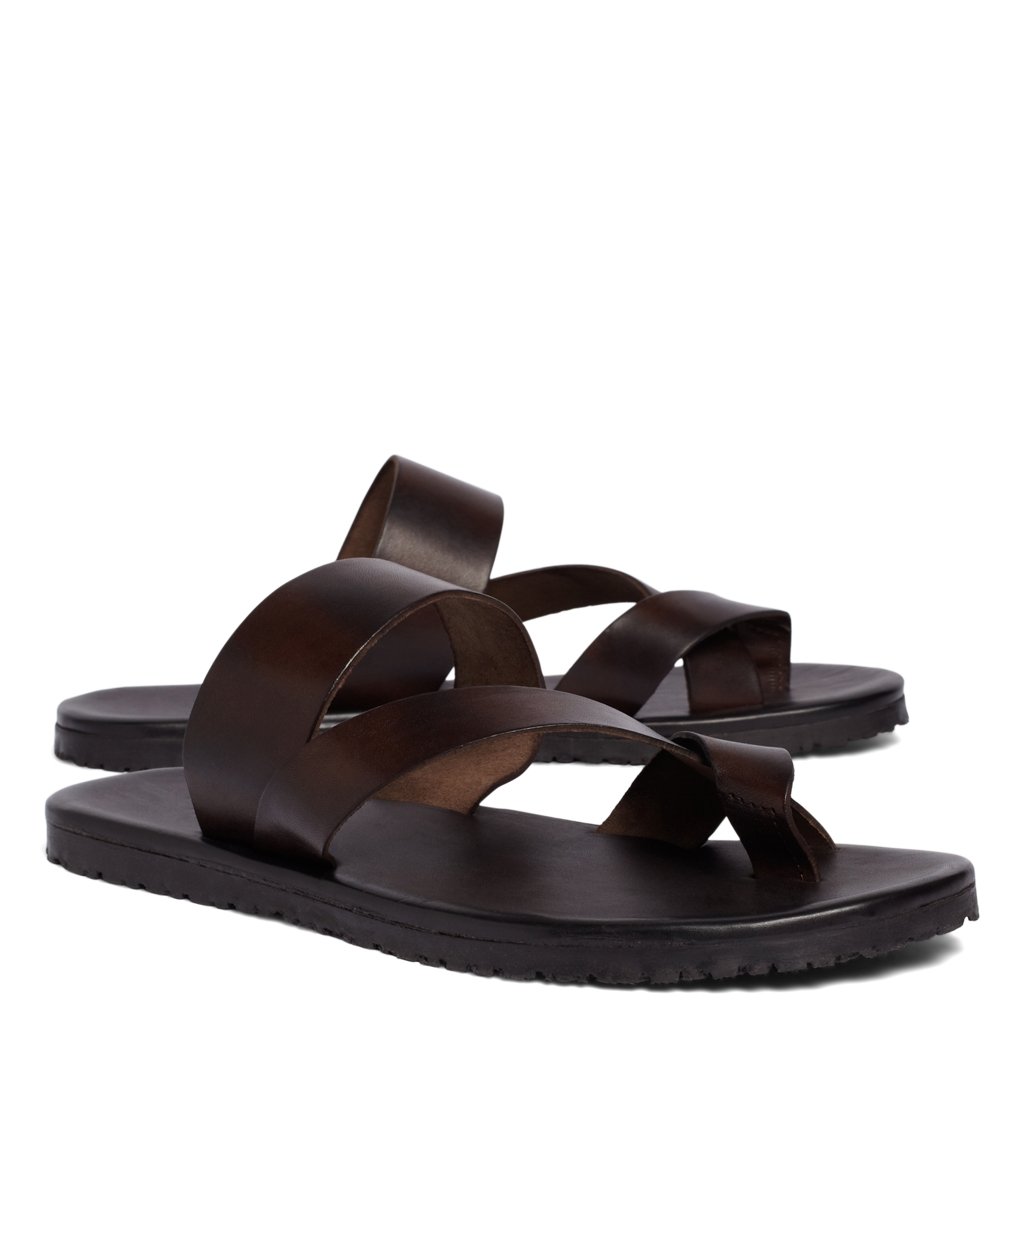 be280d37fd084 Lyst - Brooks Brothers Crisscross Sandal in Brown for Men